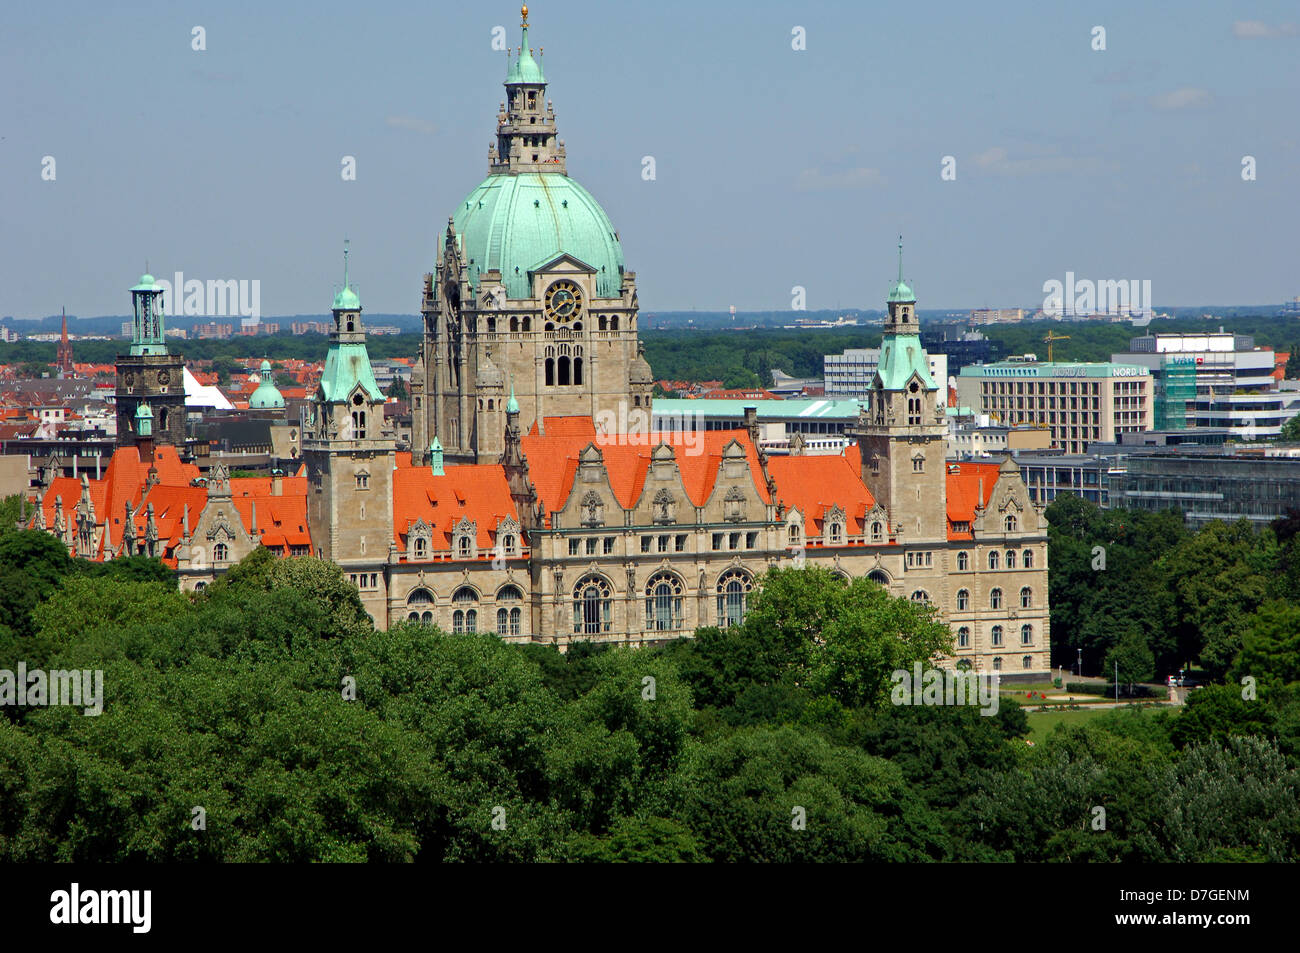 Germany, Lower Saxony, Hannover from above, new city hall - Stock Image